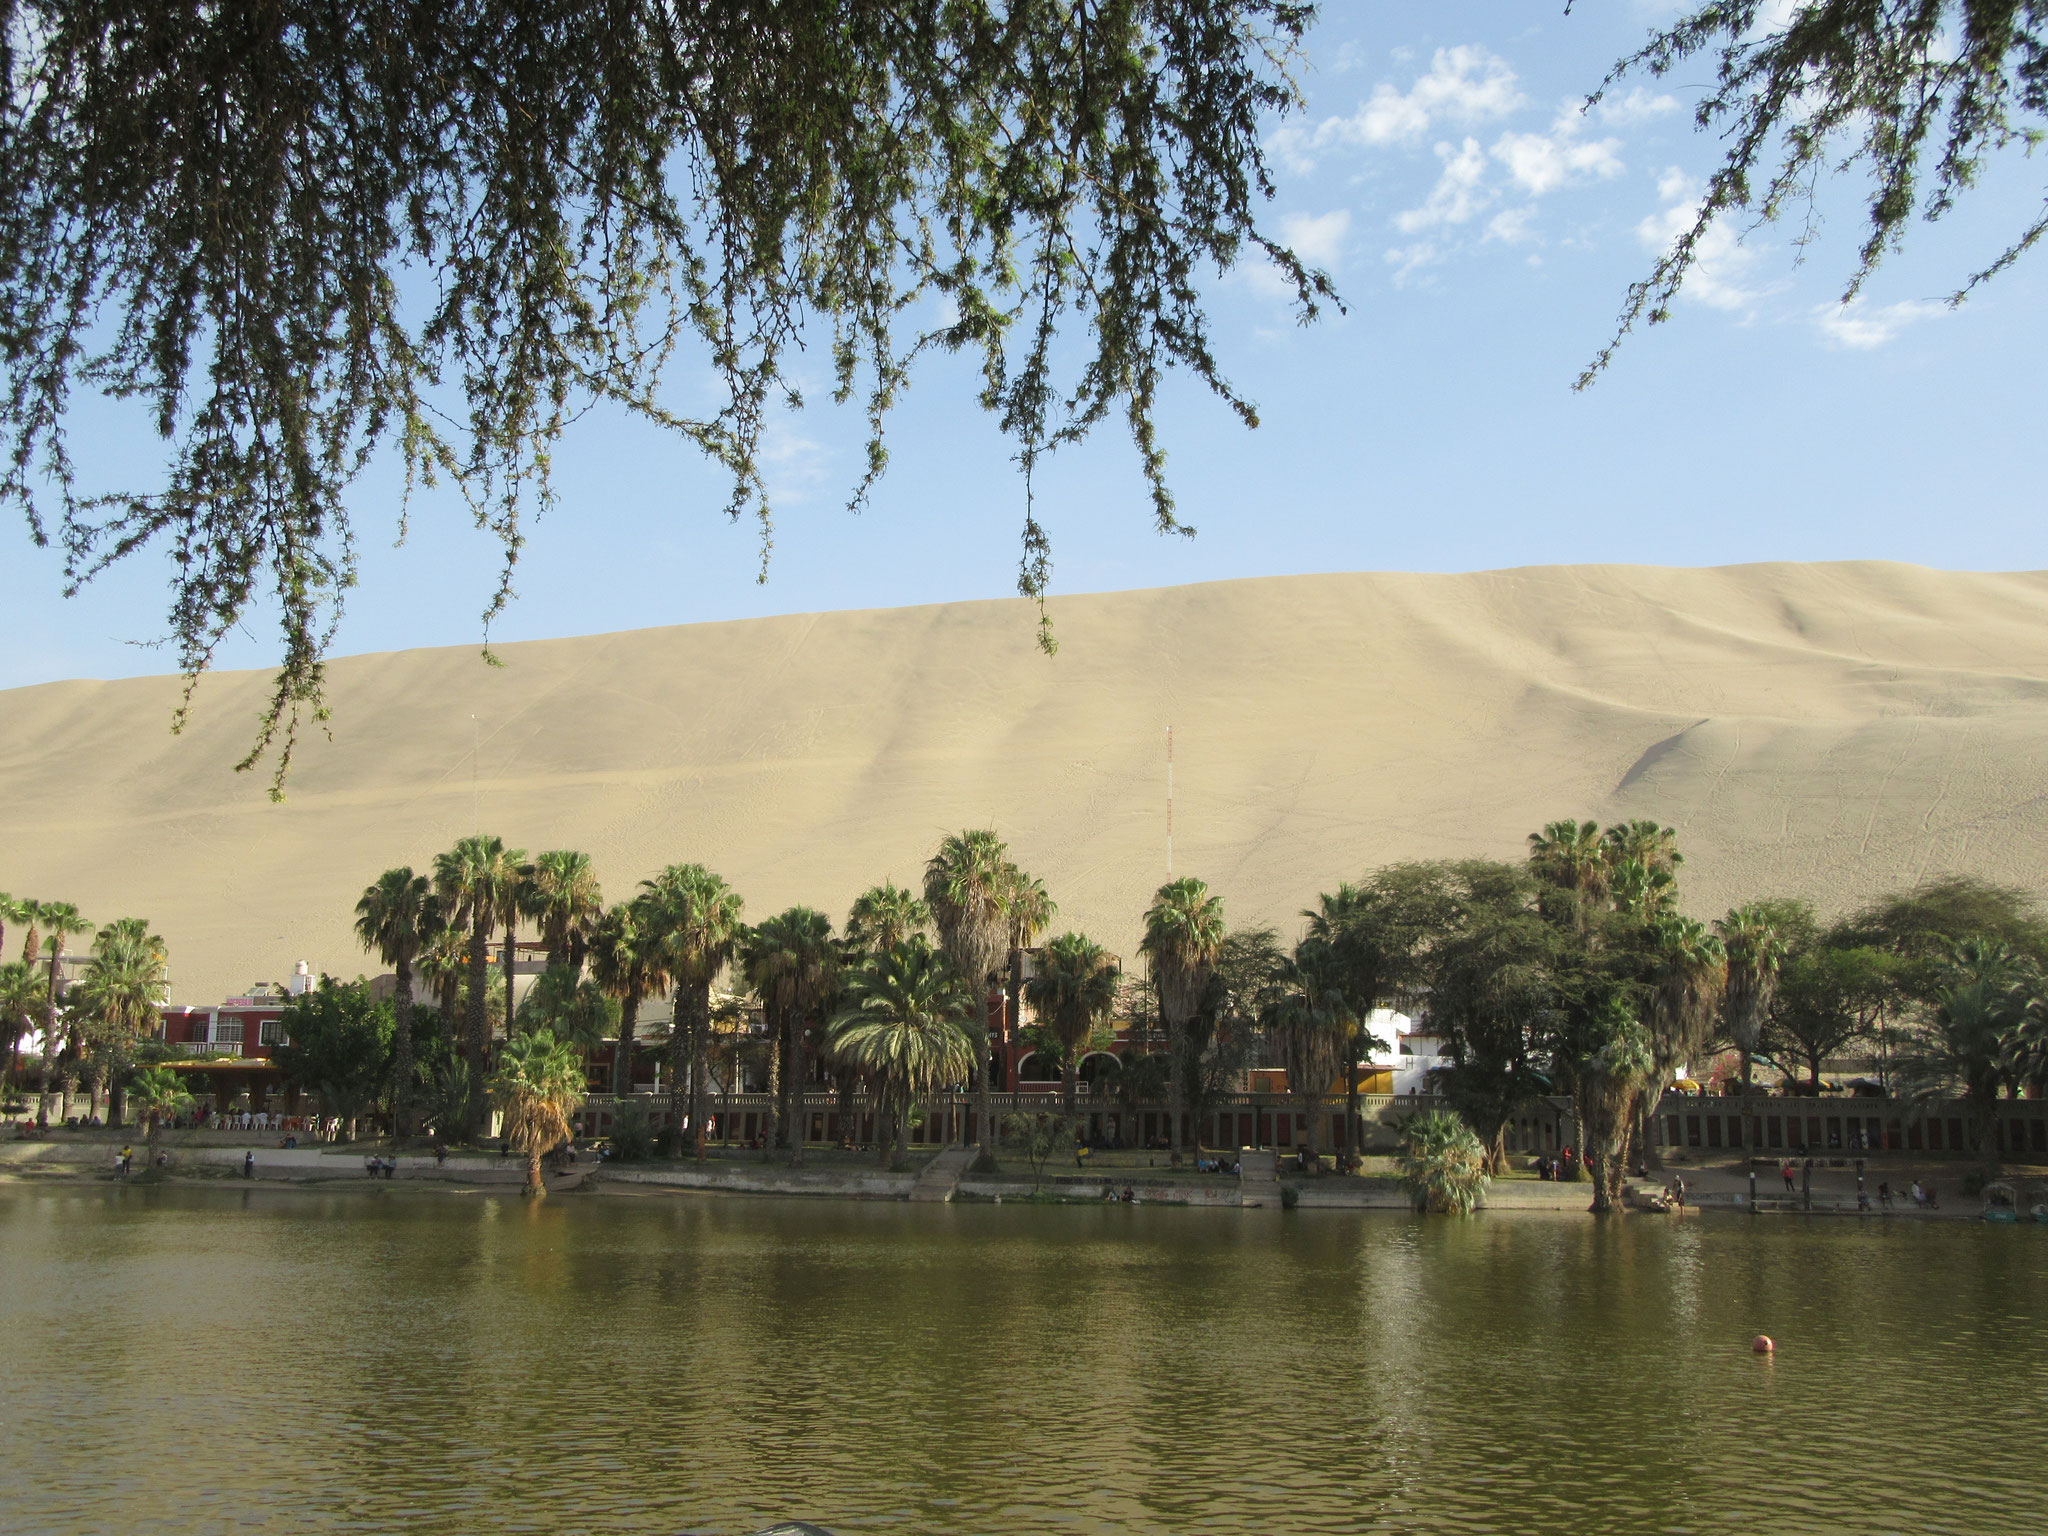 Laguna in Huacachina